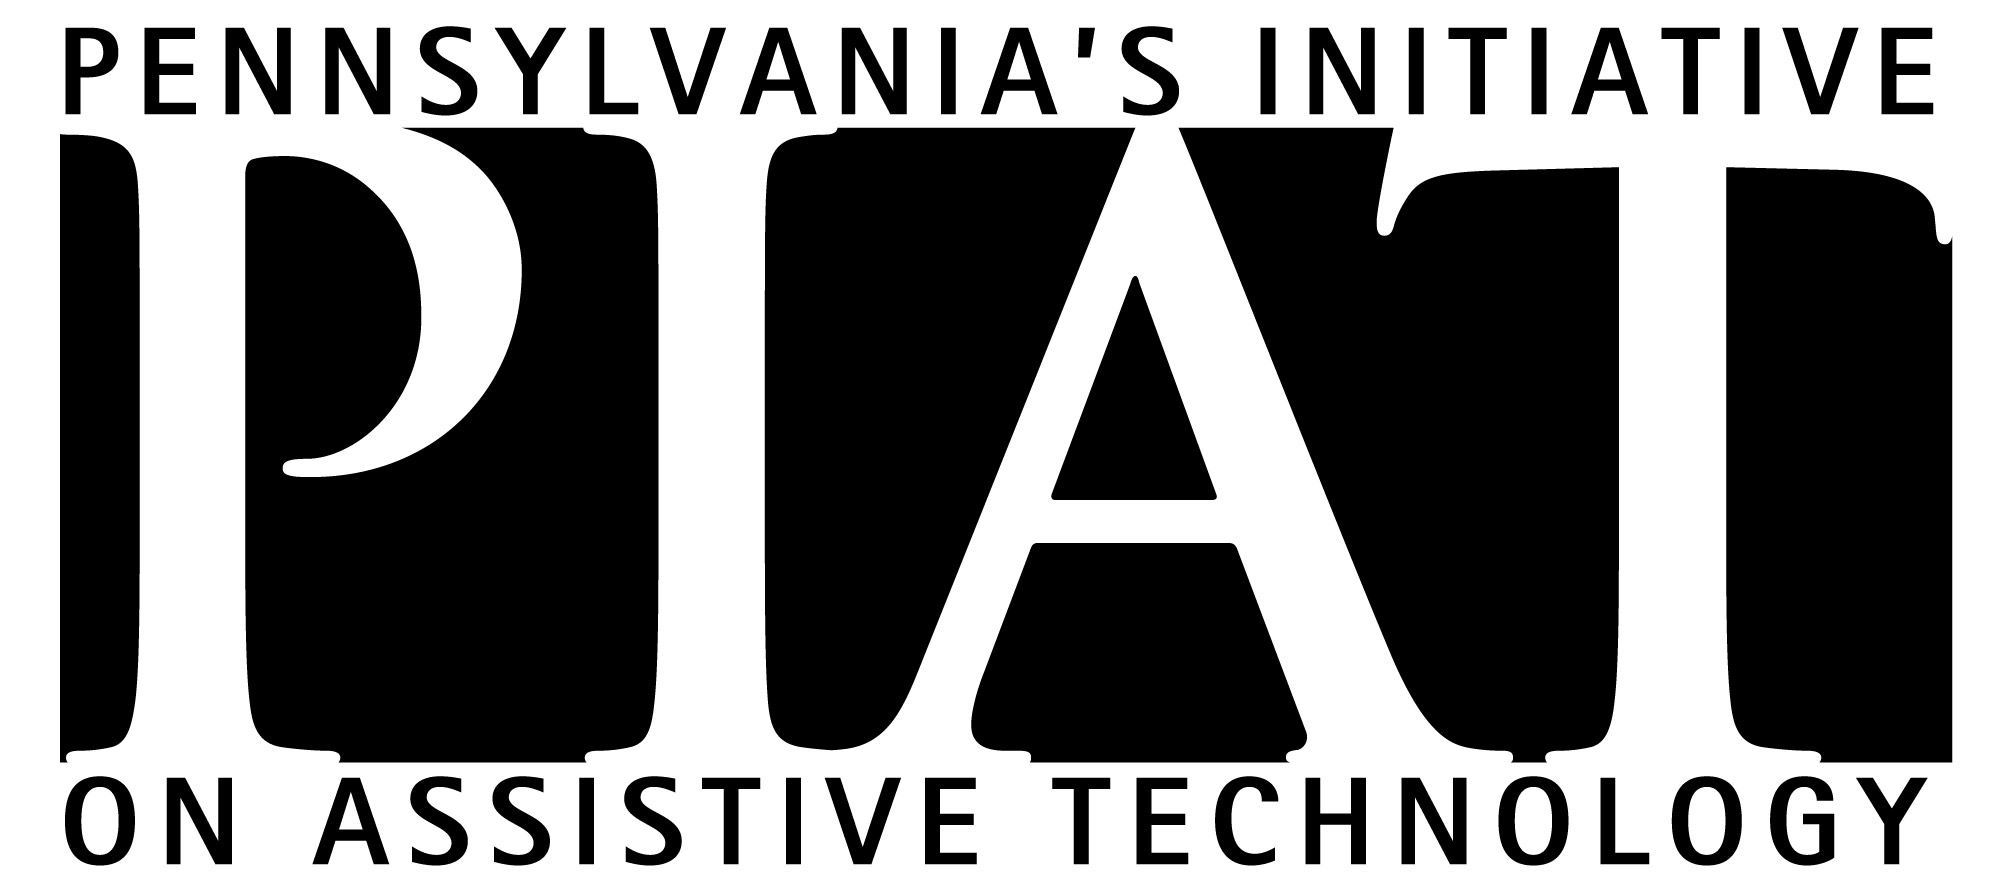 ogo: Pennsylvania's Initiative on Assistive Technologyn (PIAT)